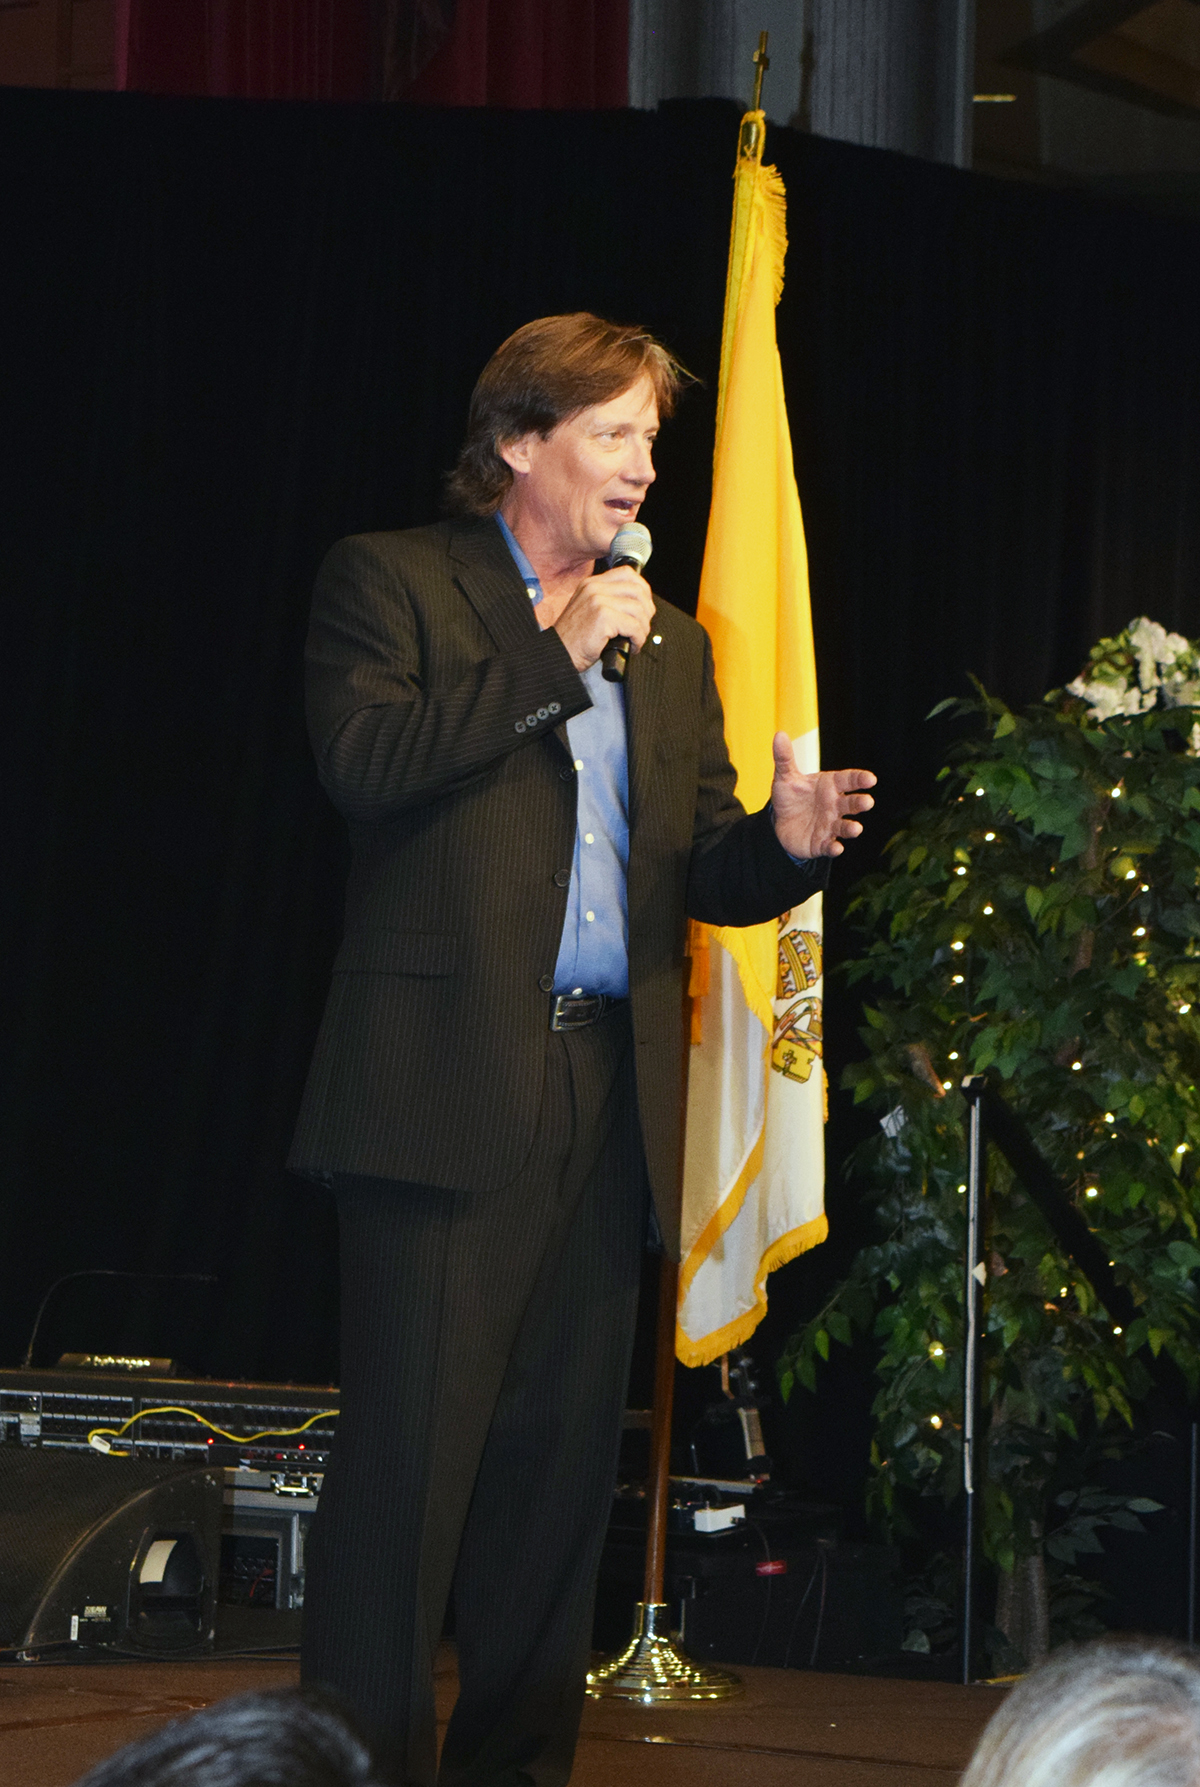 Kevin Sorbo addresses crowd